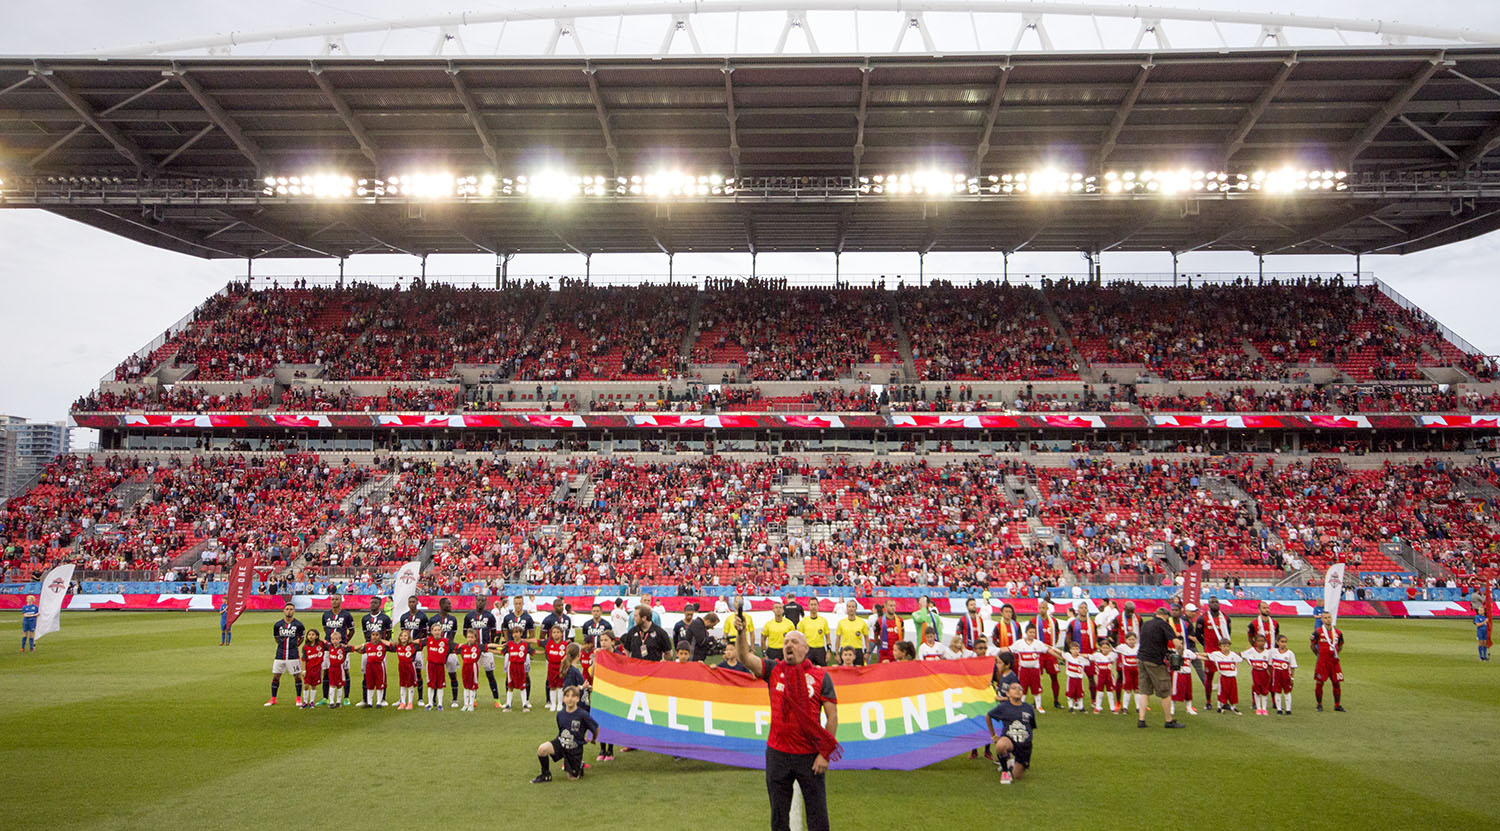 The national anthem at BMO Field with Pride ceremonies taking place two nights ahead of the Pride Parade in Toronto, Canada. Image by Dennis Marciniak of denMAR Media.